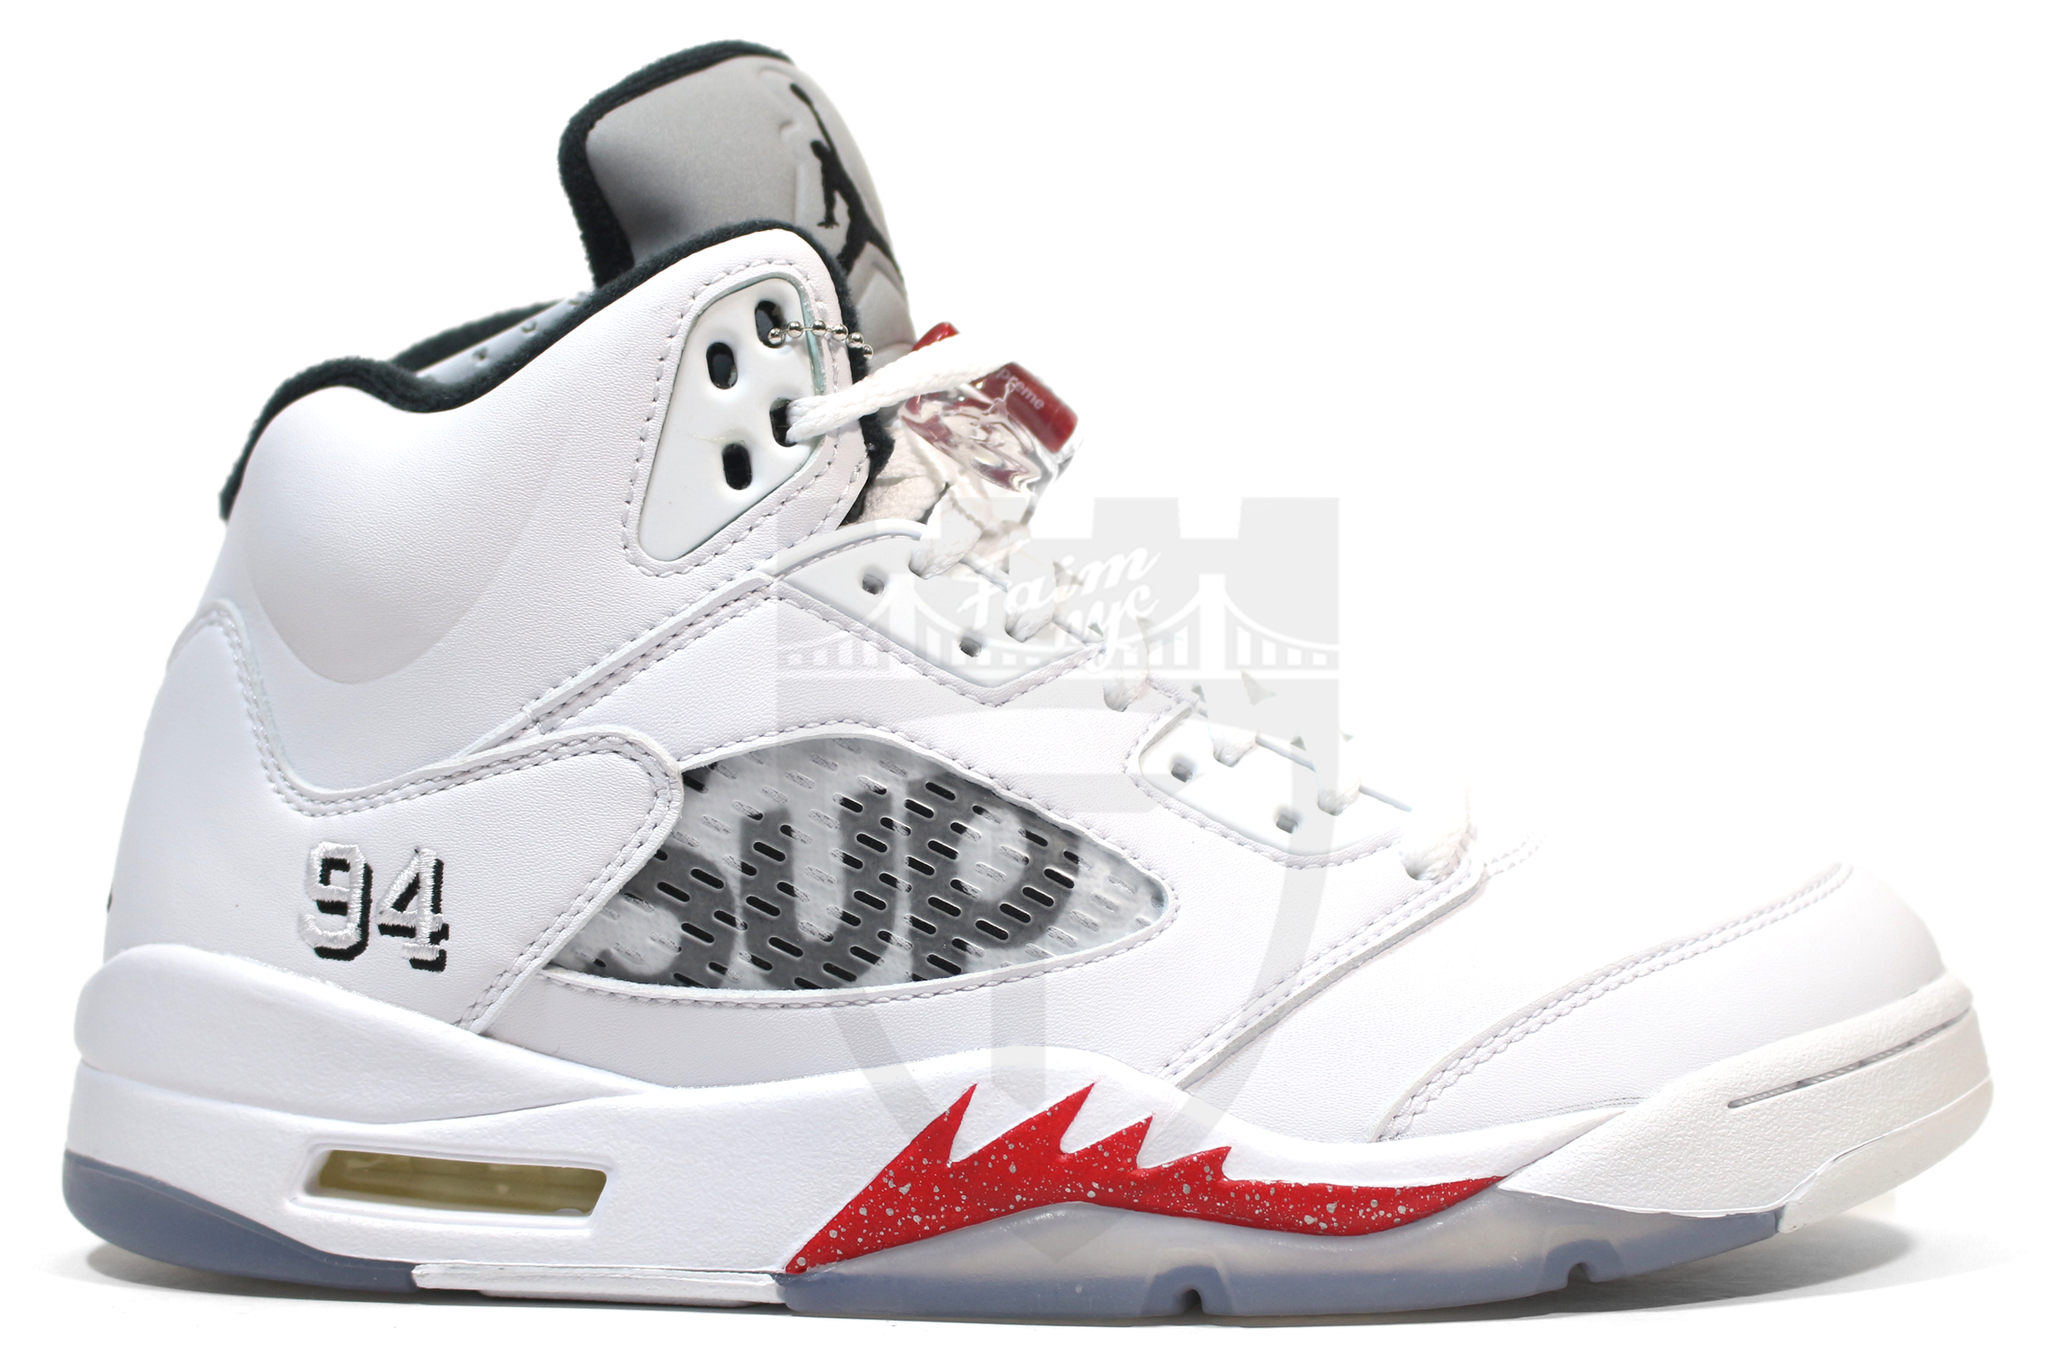 9454a06dcc7b ... reduced air jordan 5 retro supreme white 79a77 b6cec